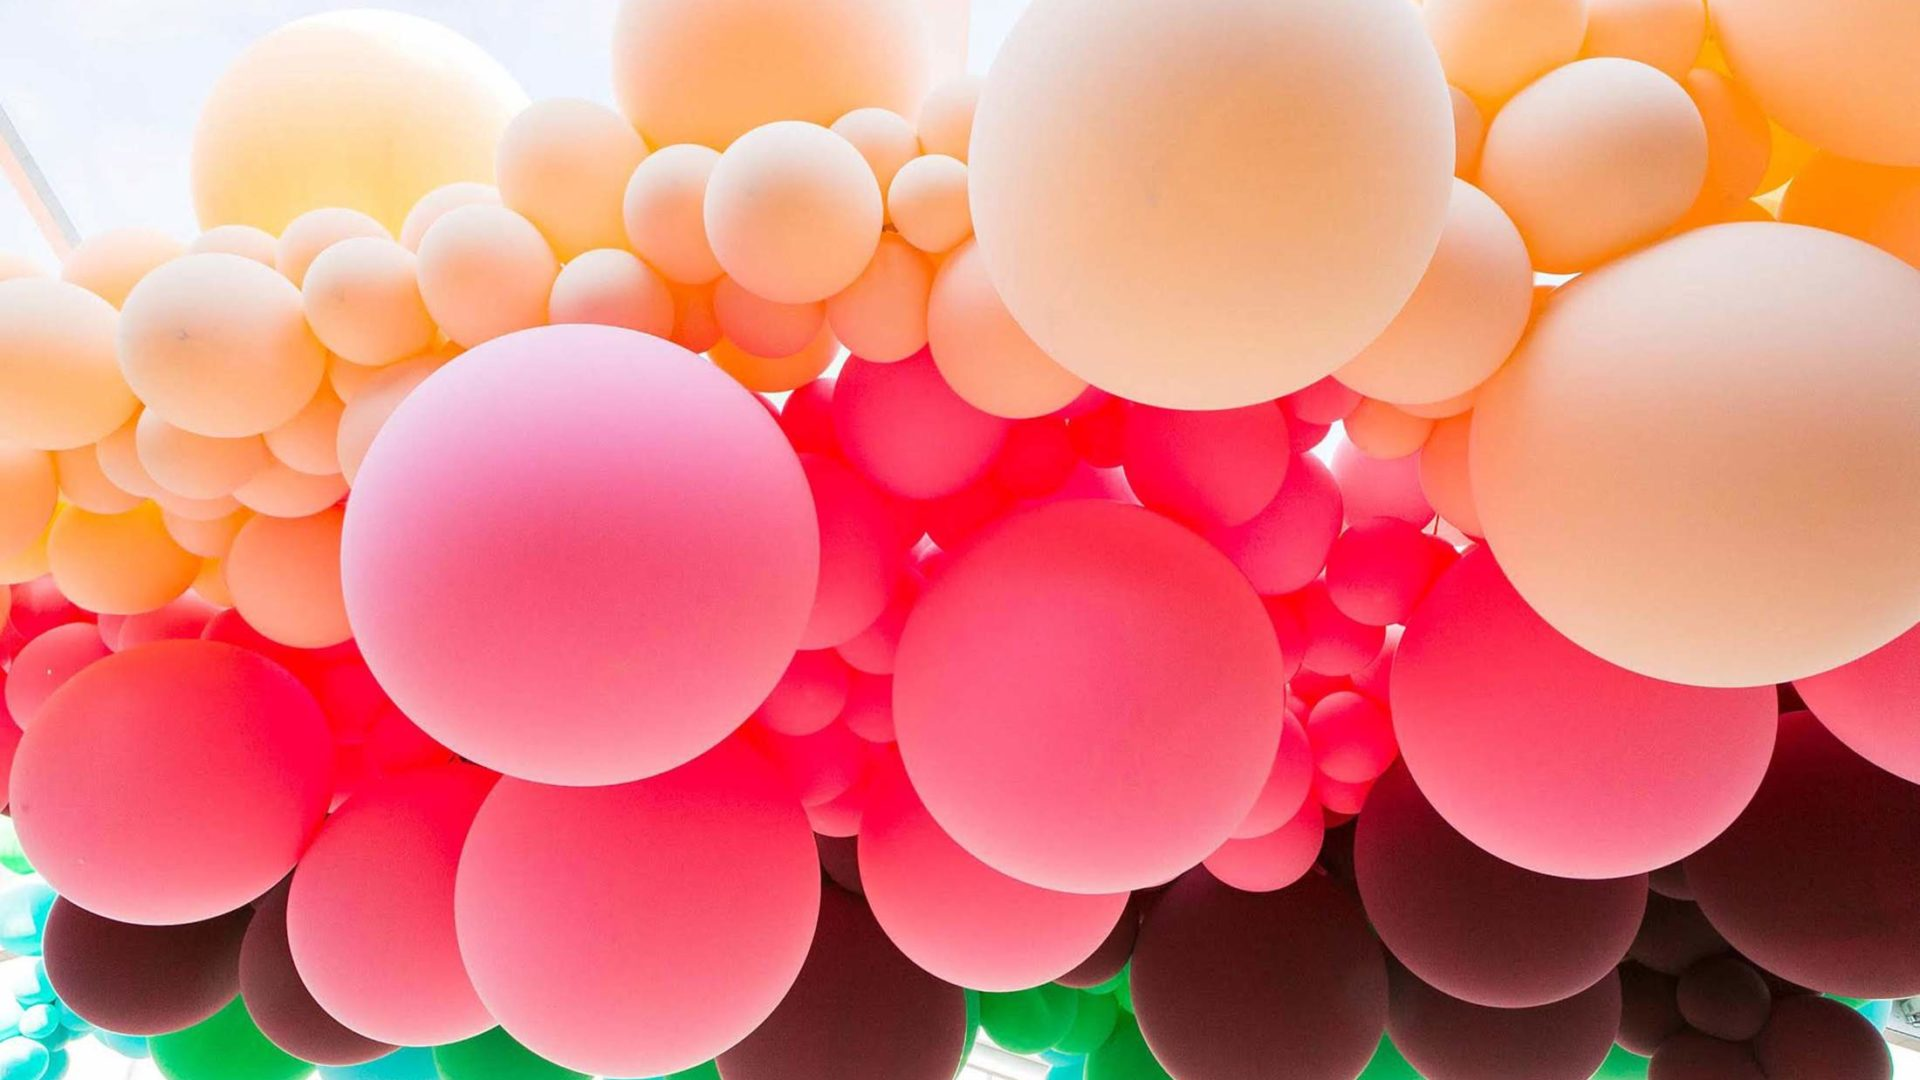 Large colorful balloons